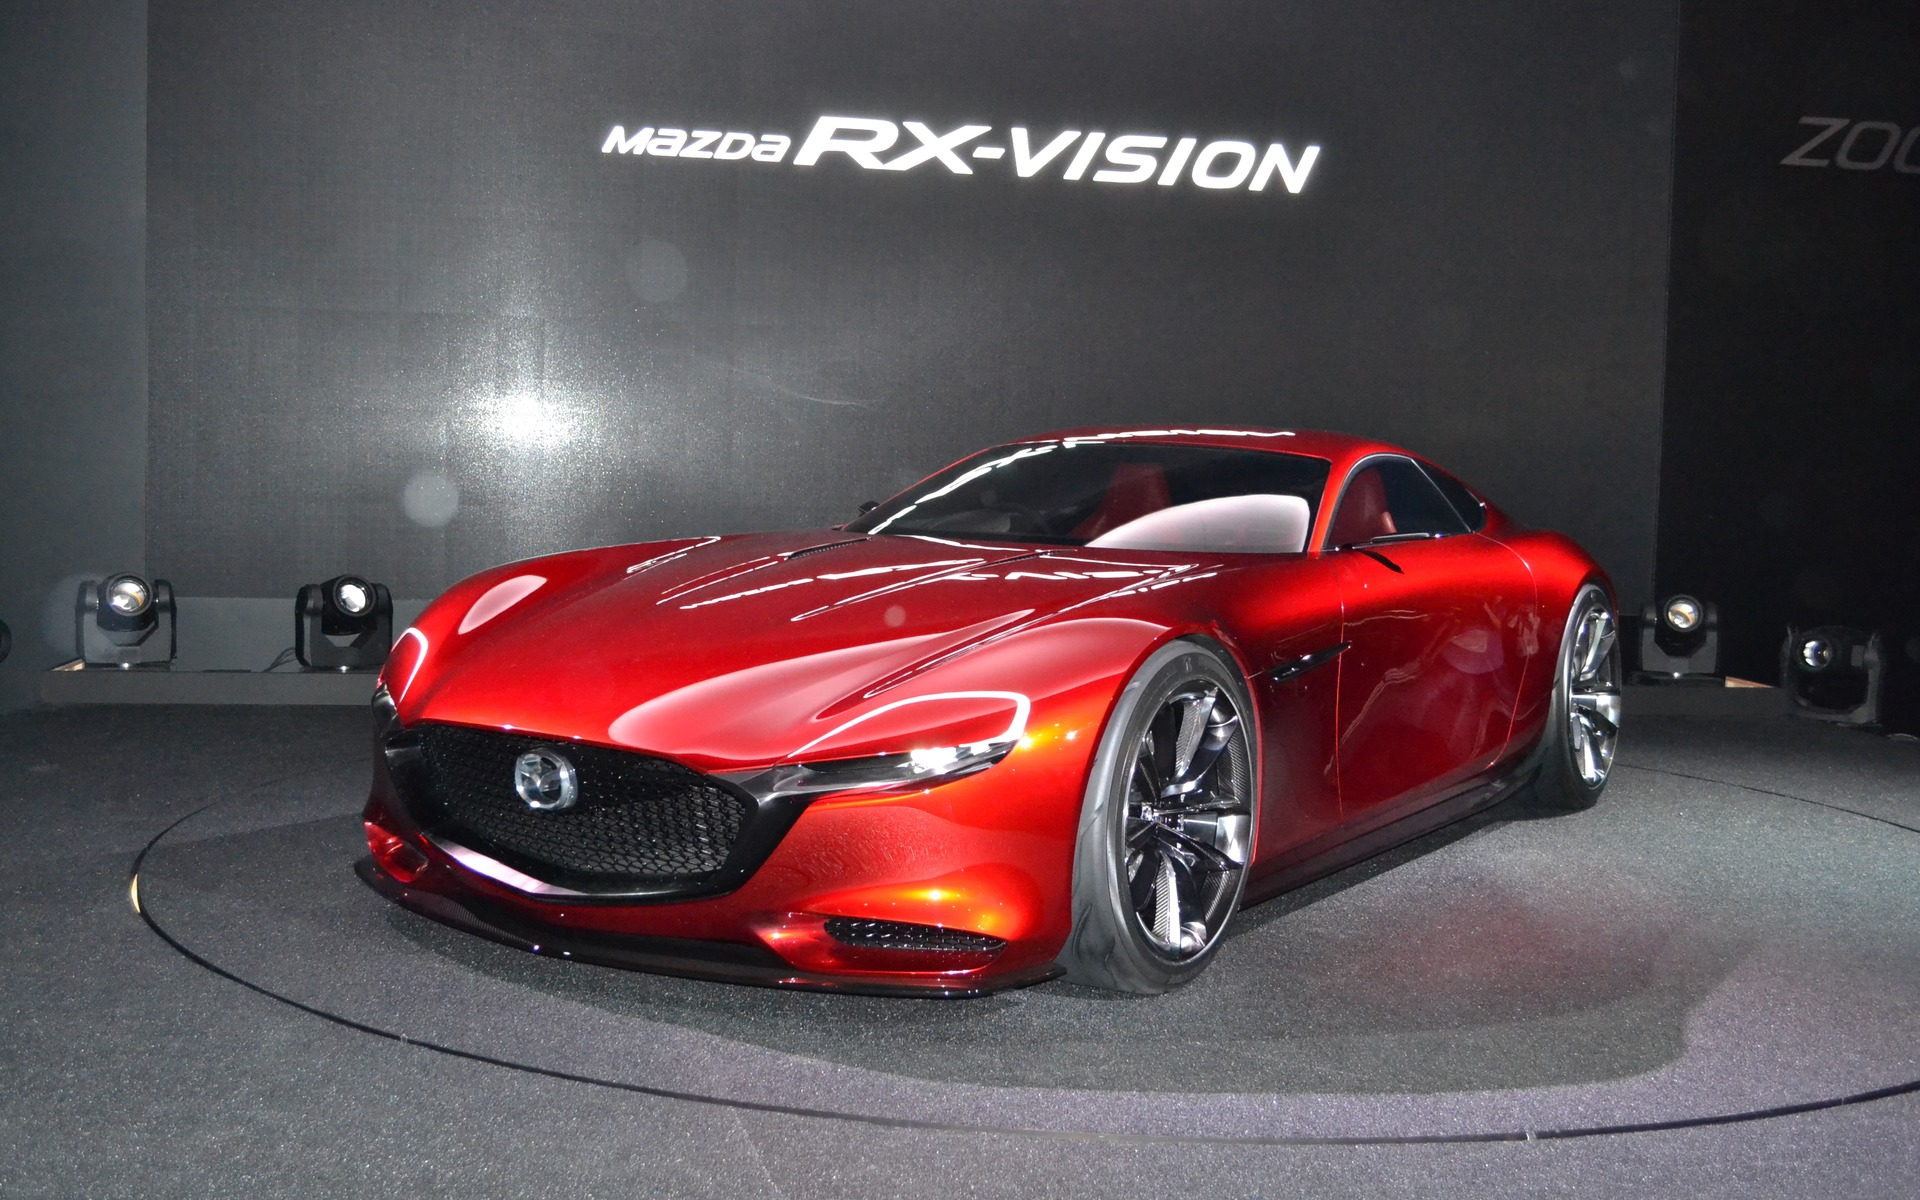 https://i.gaw.to/photos/2/2/3/223343_2015_Mazda_Concept.jpg